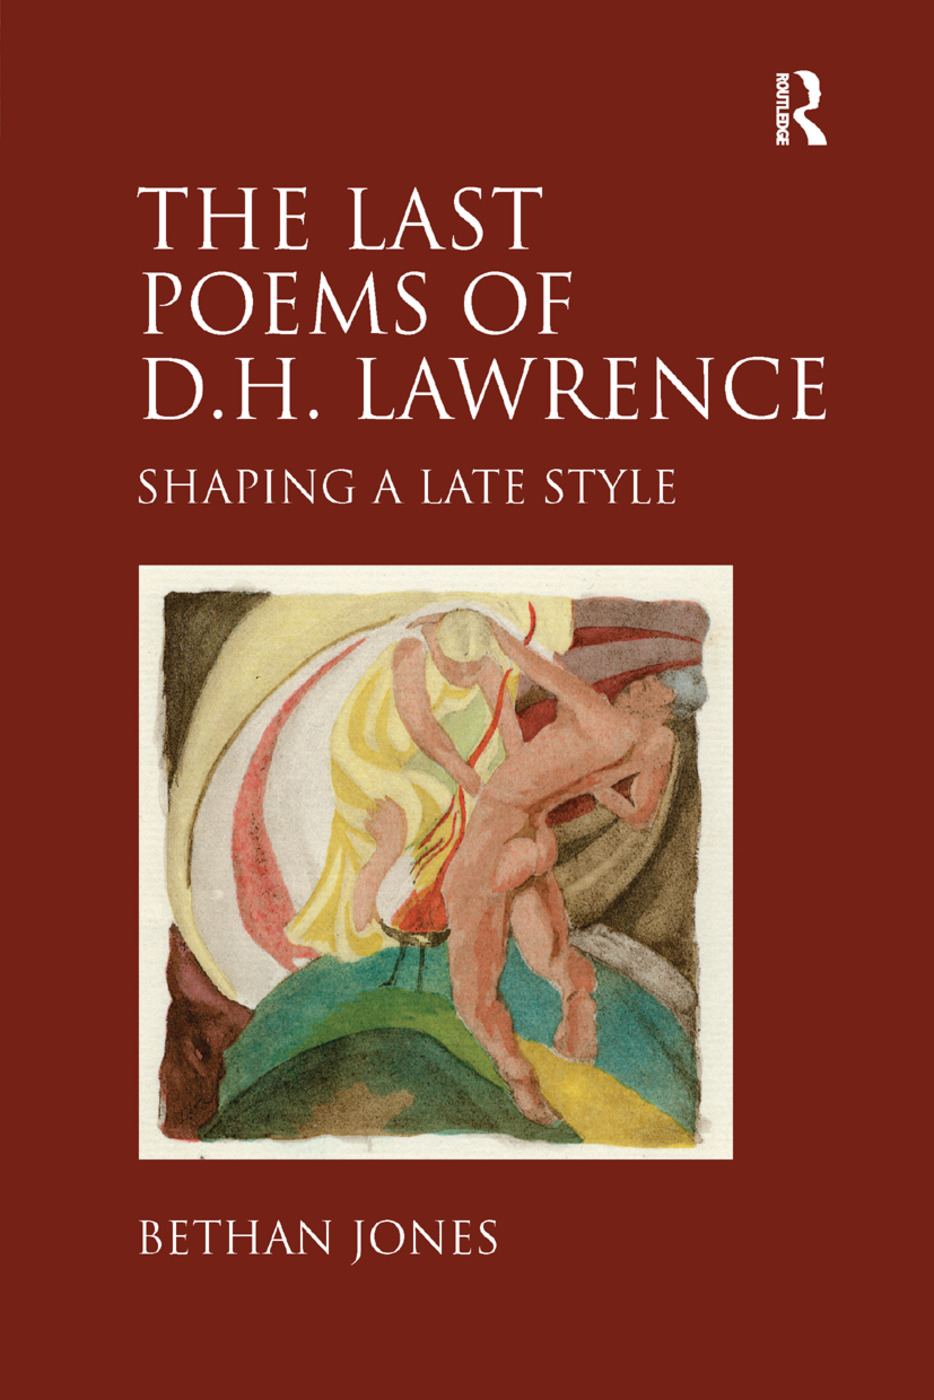 The Last Poems of D.H. Lawrence